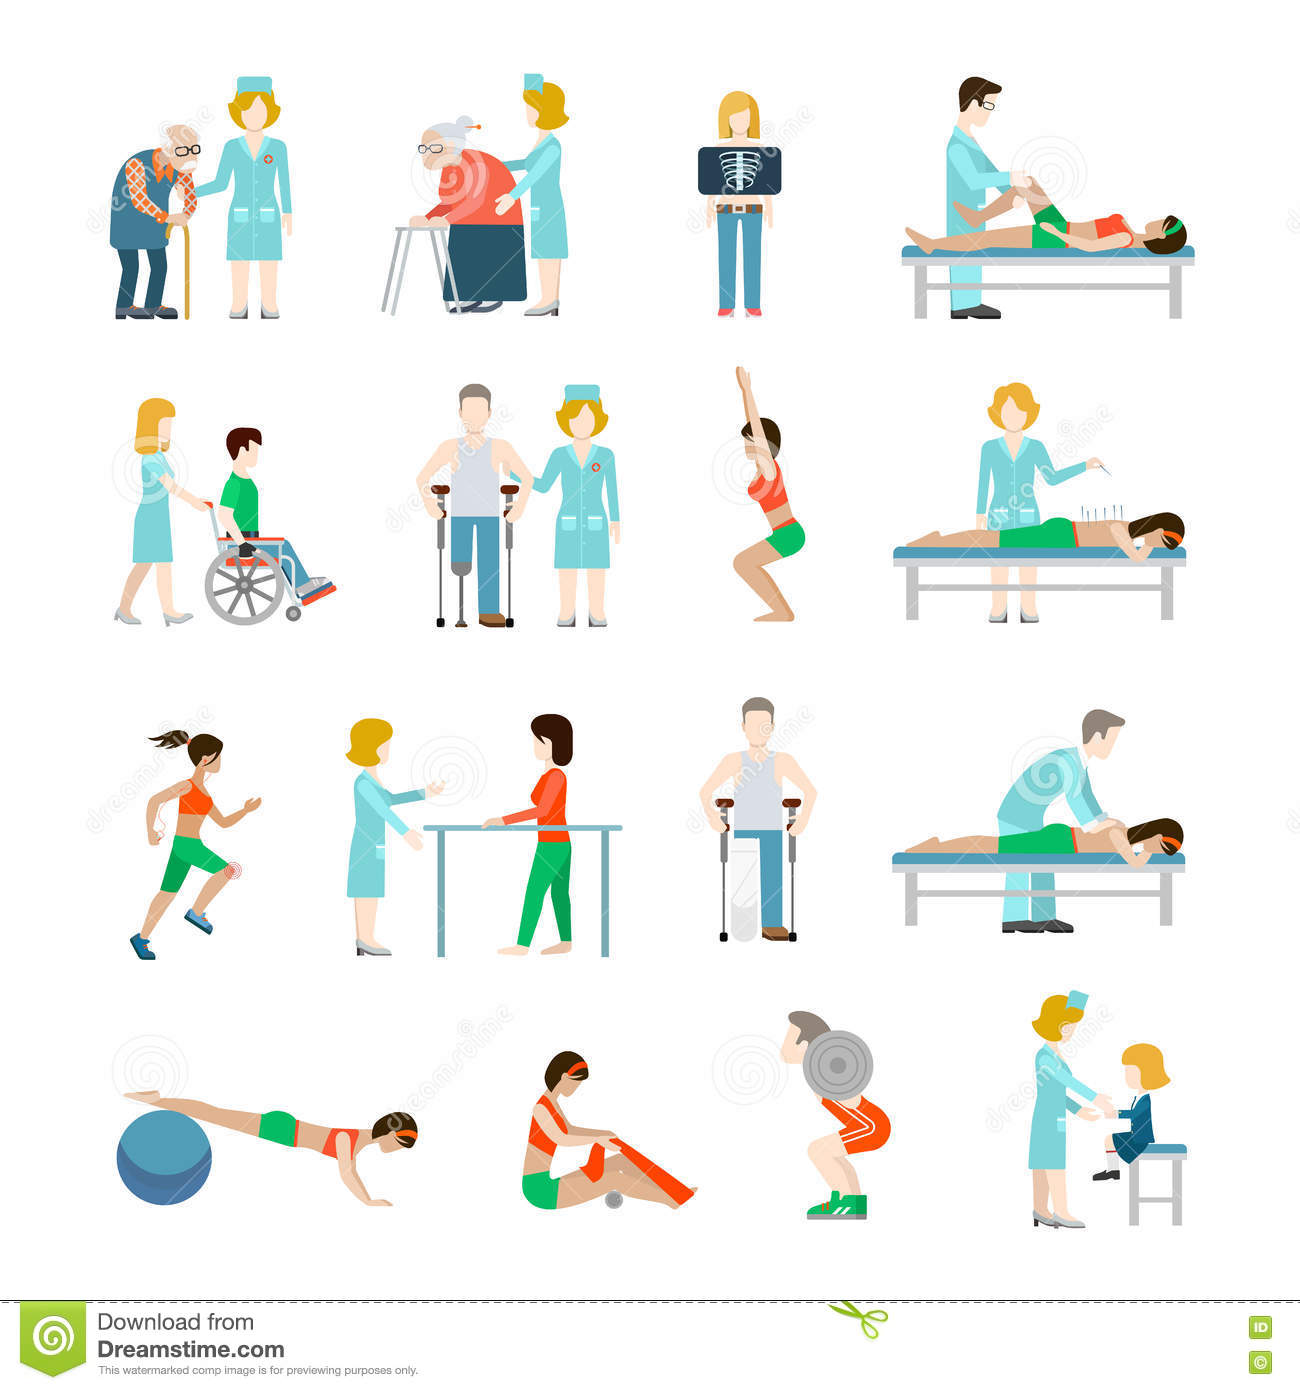 Stroke rehabilitation: Which factors influence the outcome?